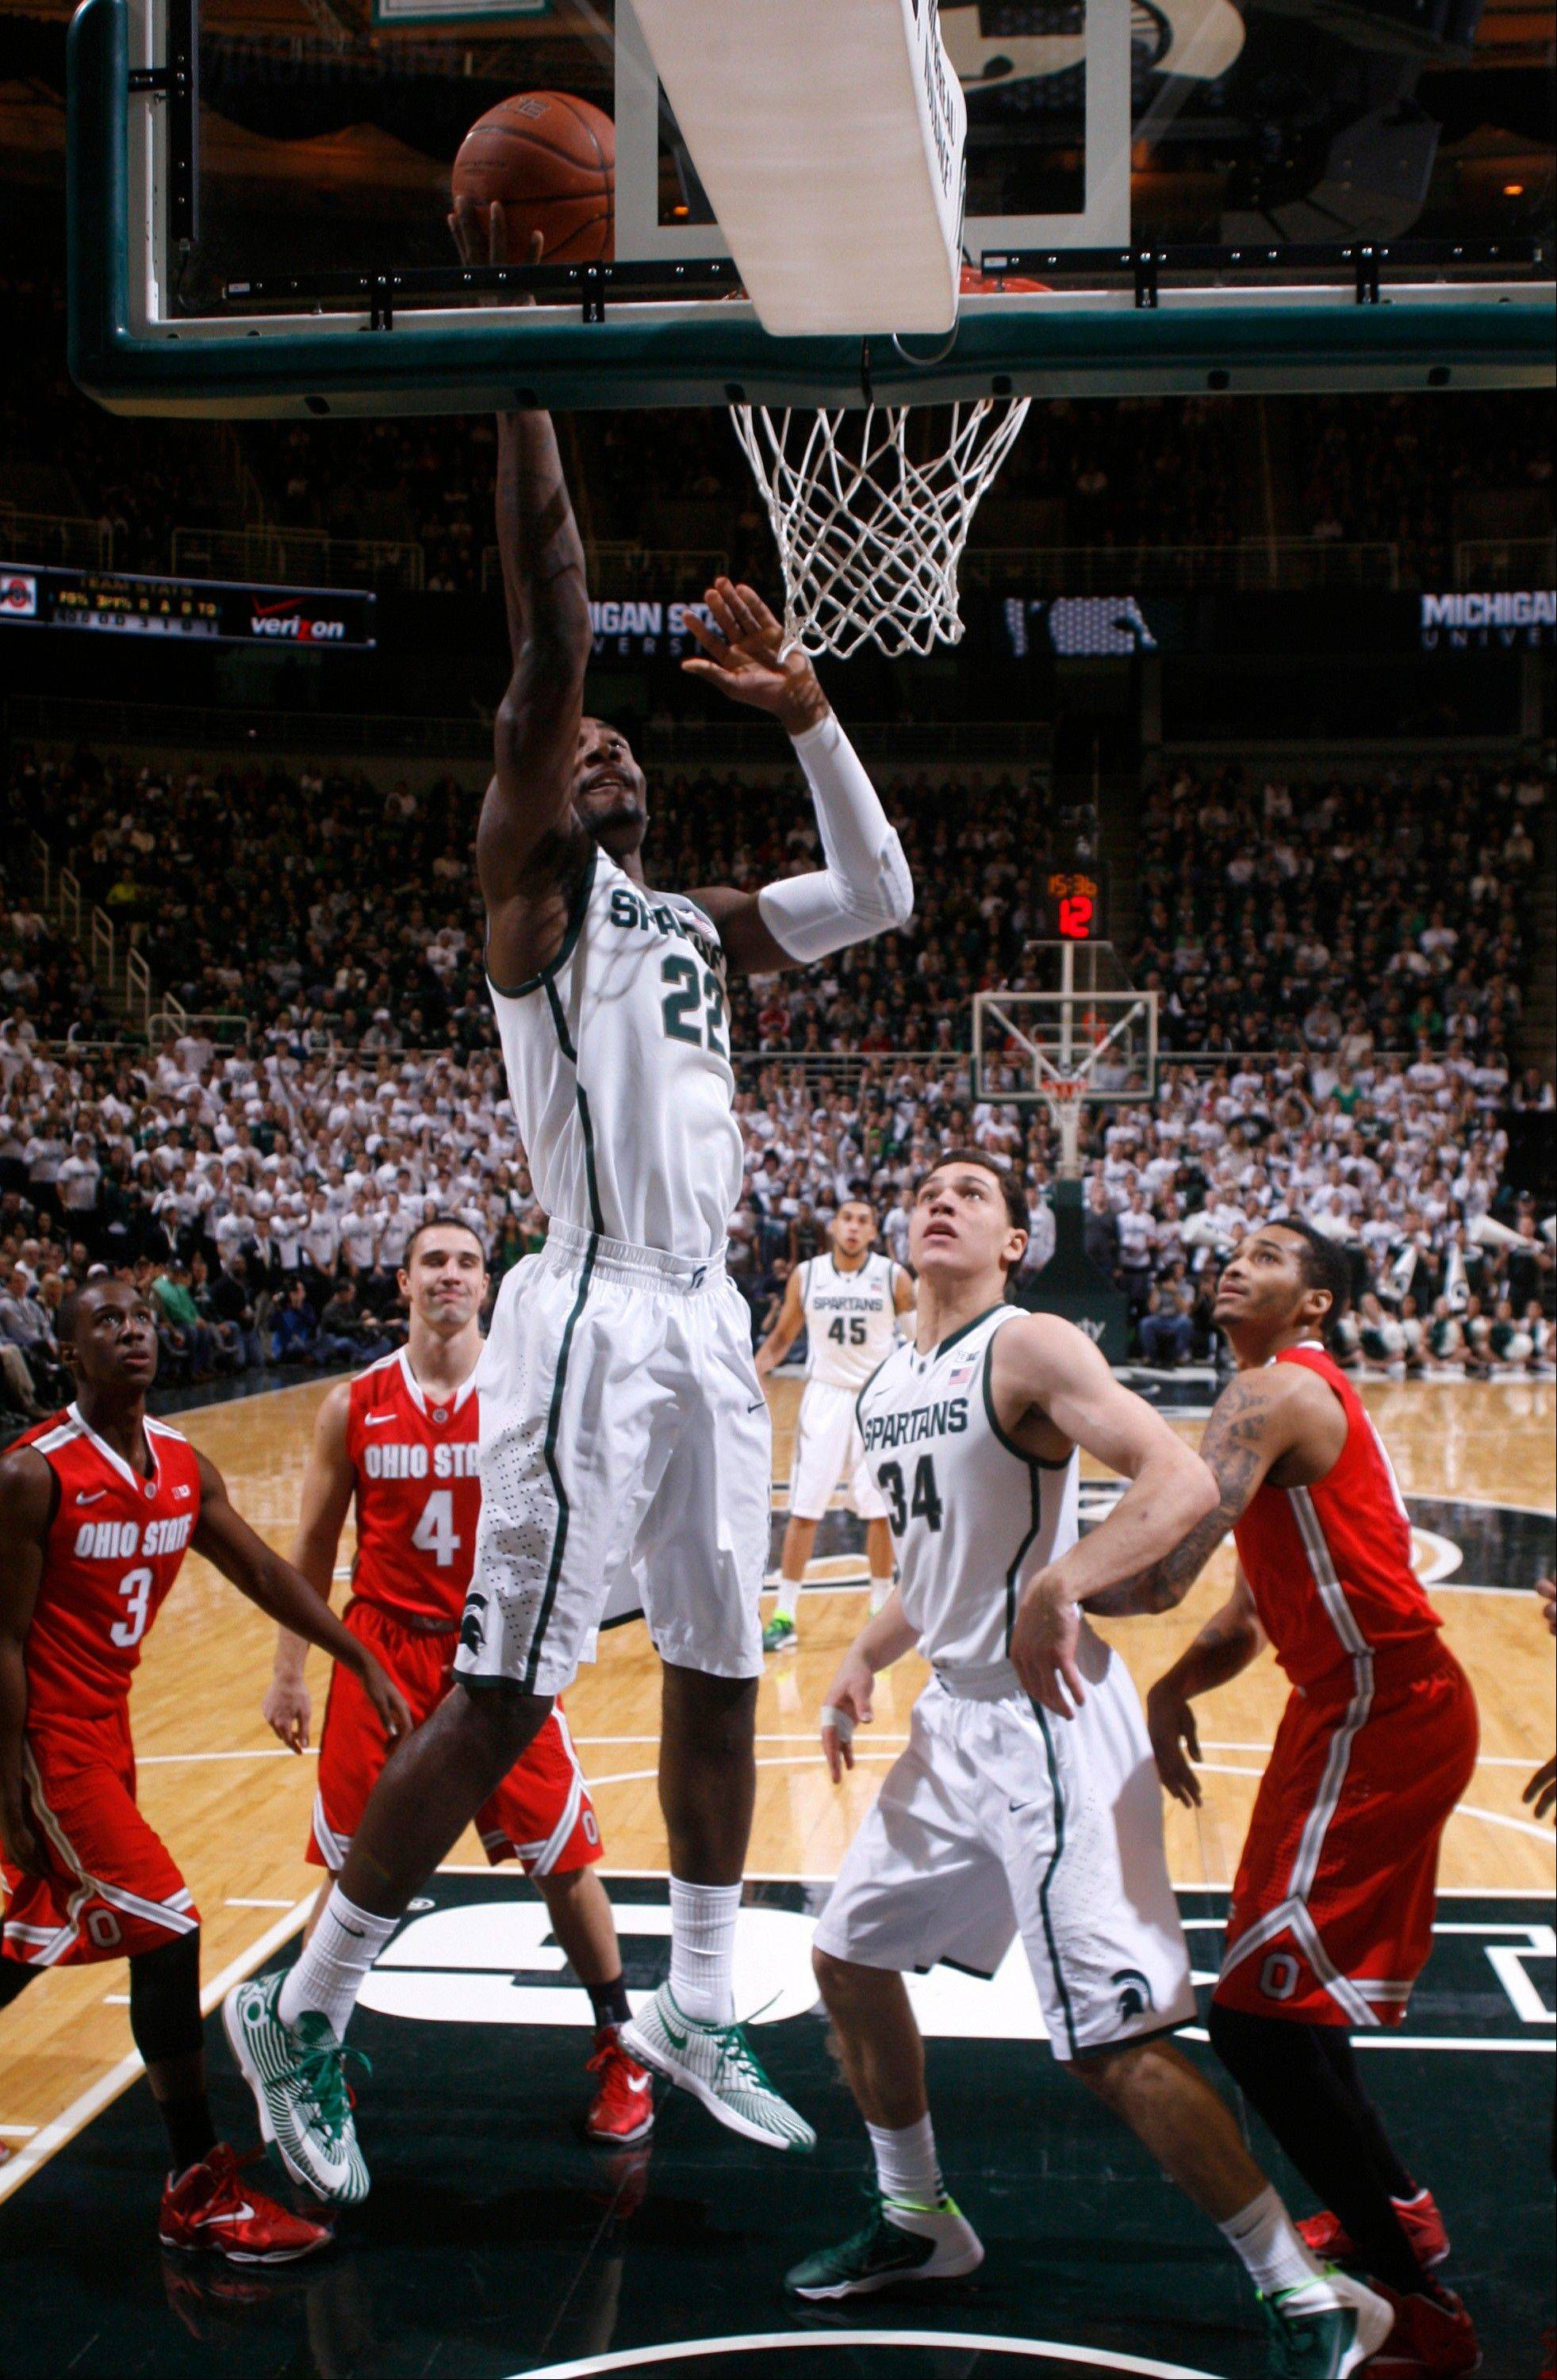 Michigan State�s Branden Dawson lays the ball up as Ohio State�s Shanon Scott (3), Aaron Craft (4), and LaQuinton Ross, right, and Michigan State�s Gavin Schilling watch during the first half Tuesday in East Lansing, Mich.